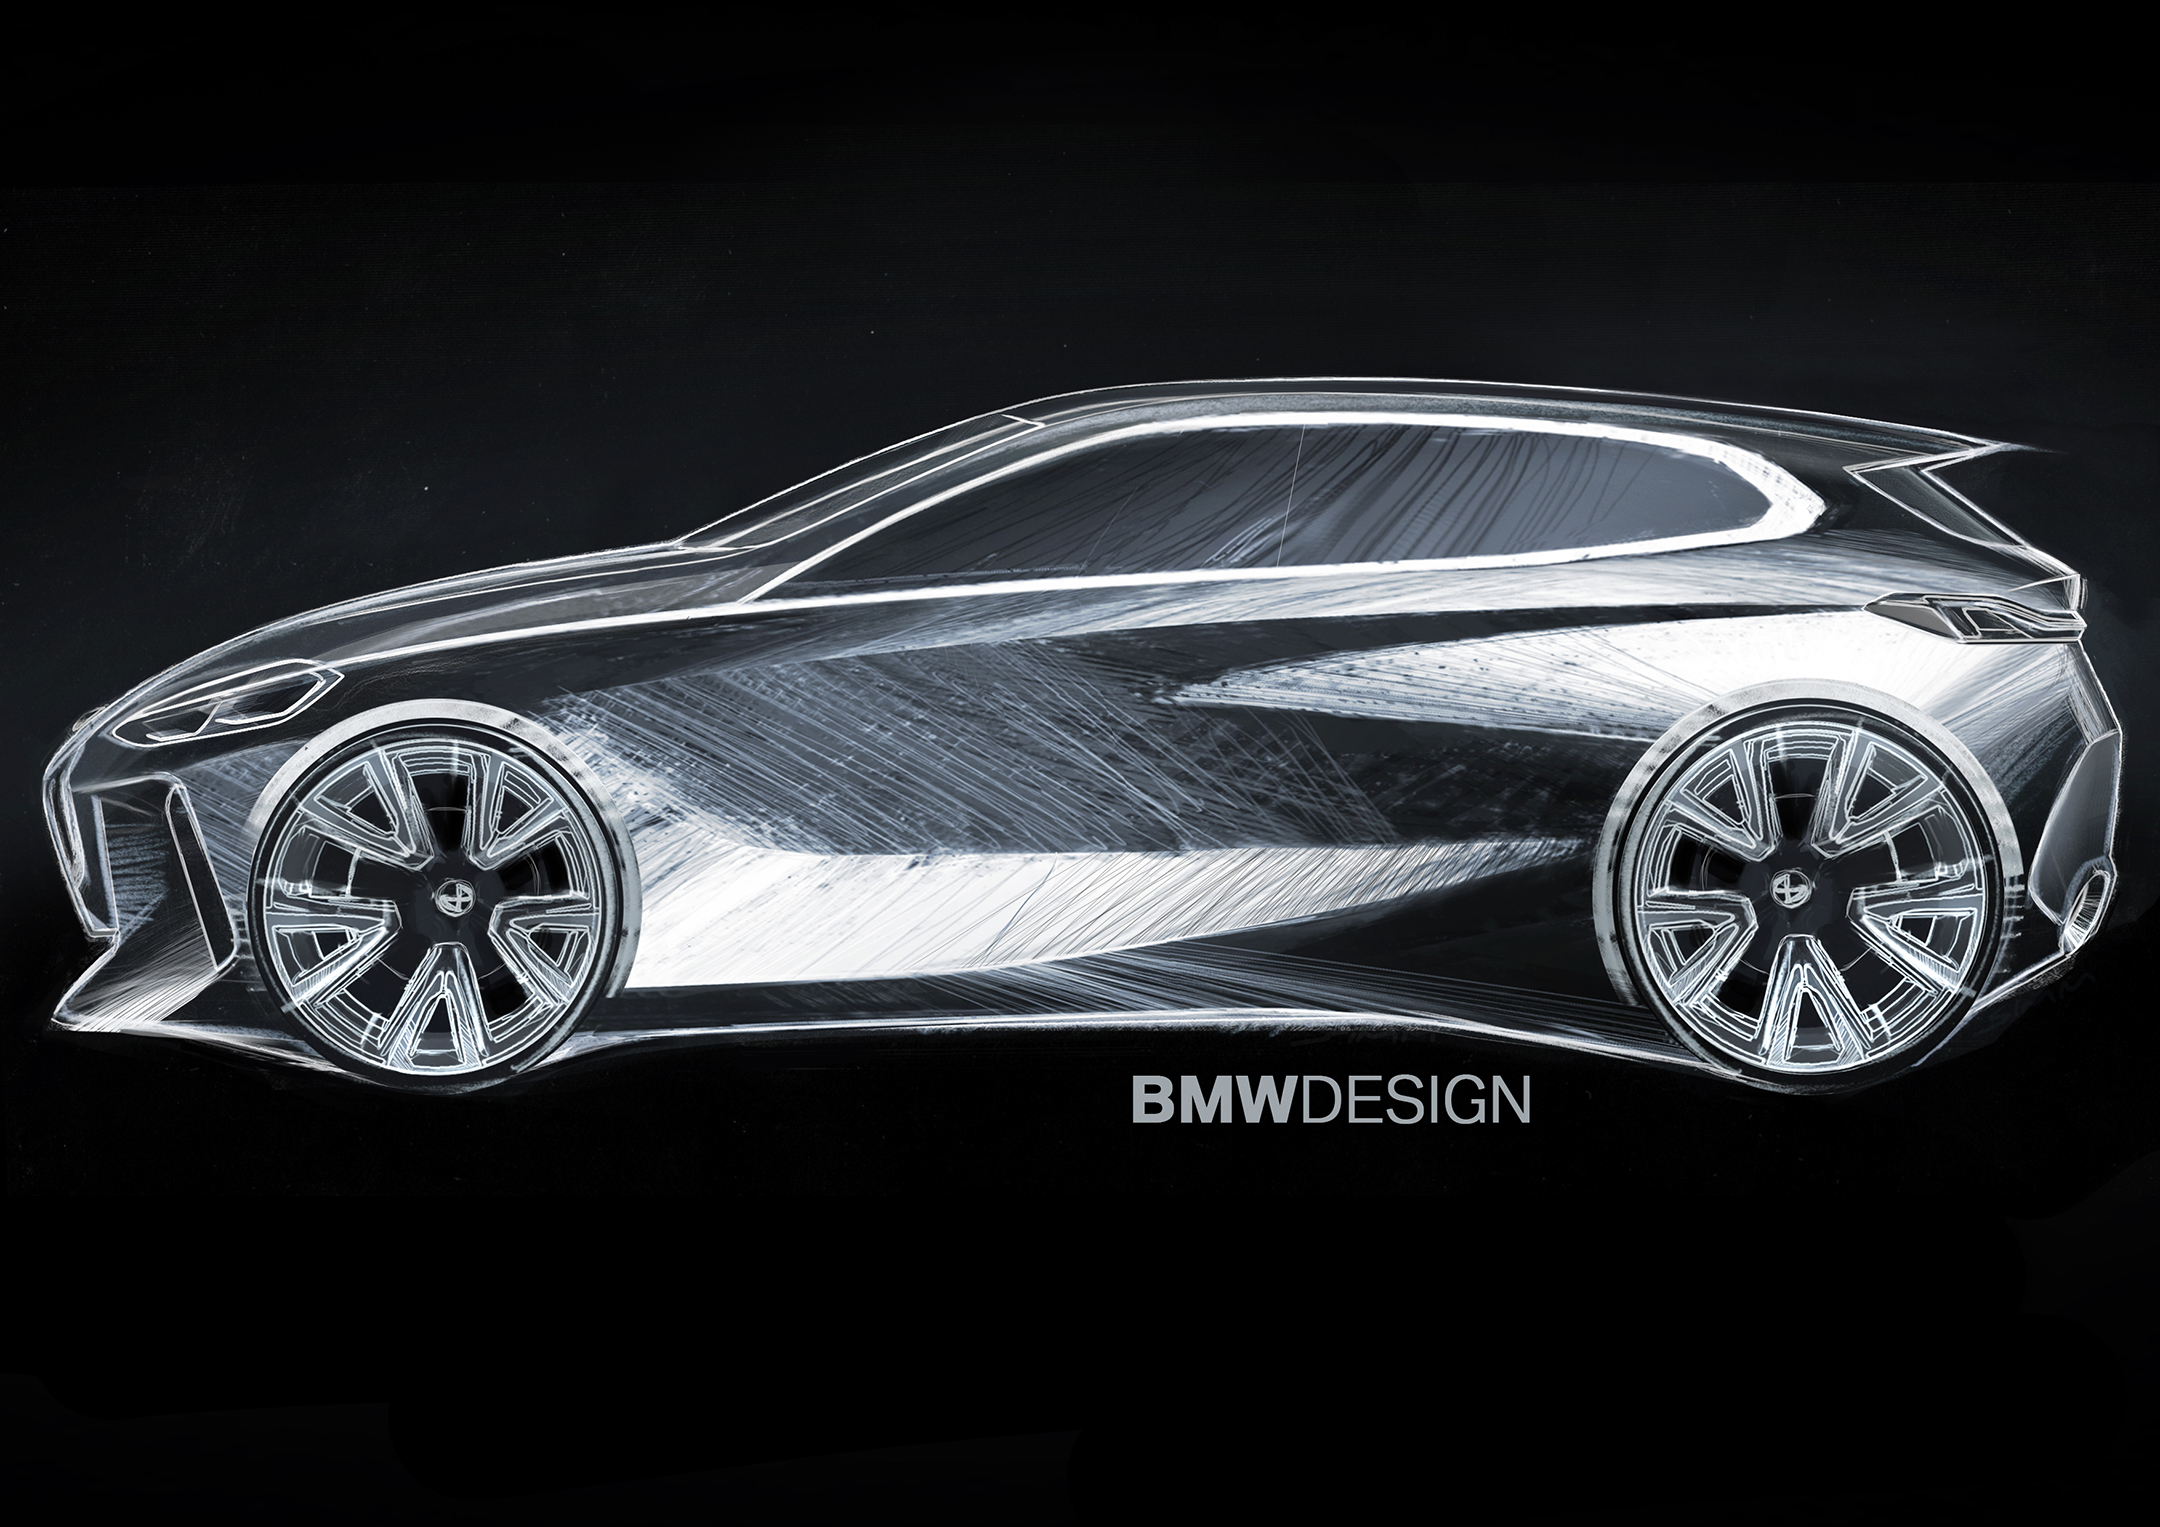 BMW 1 Series - 2019 - design sketch - side-face / profil